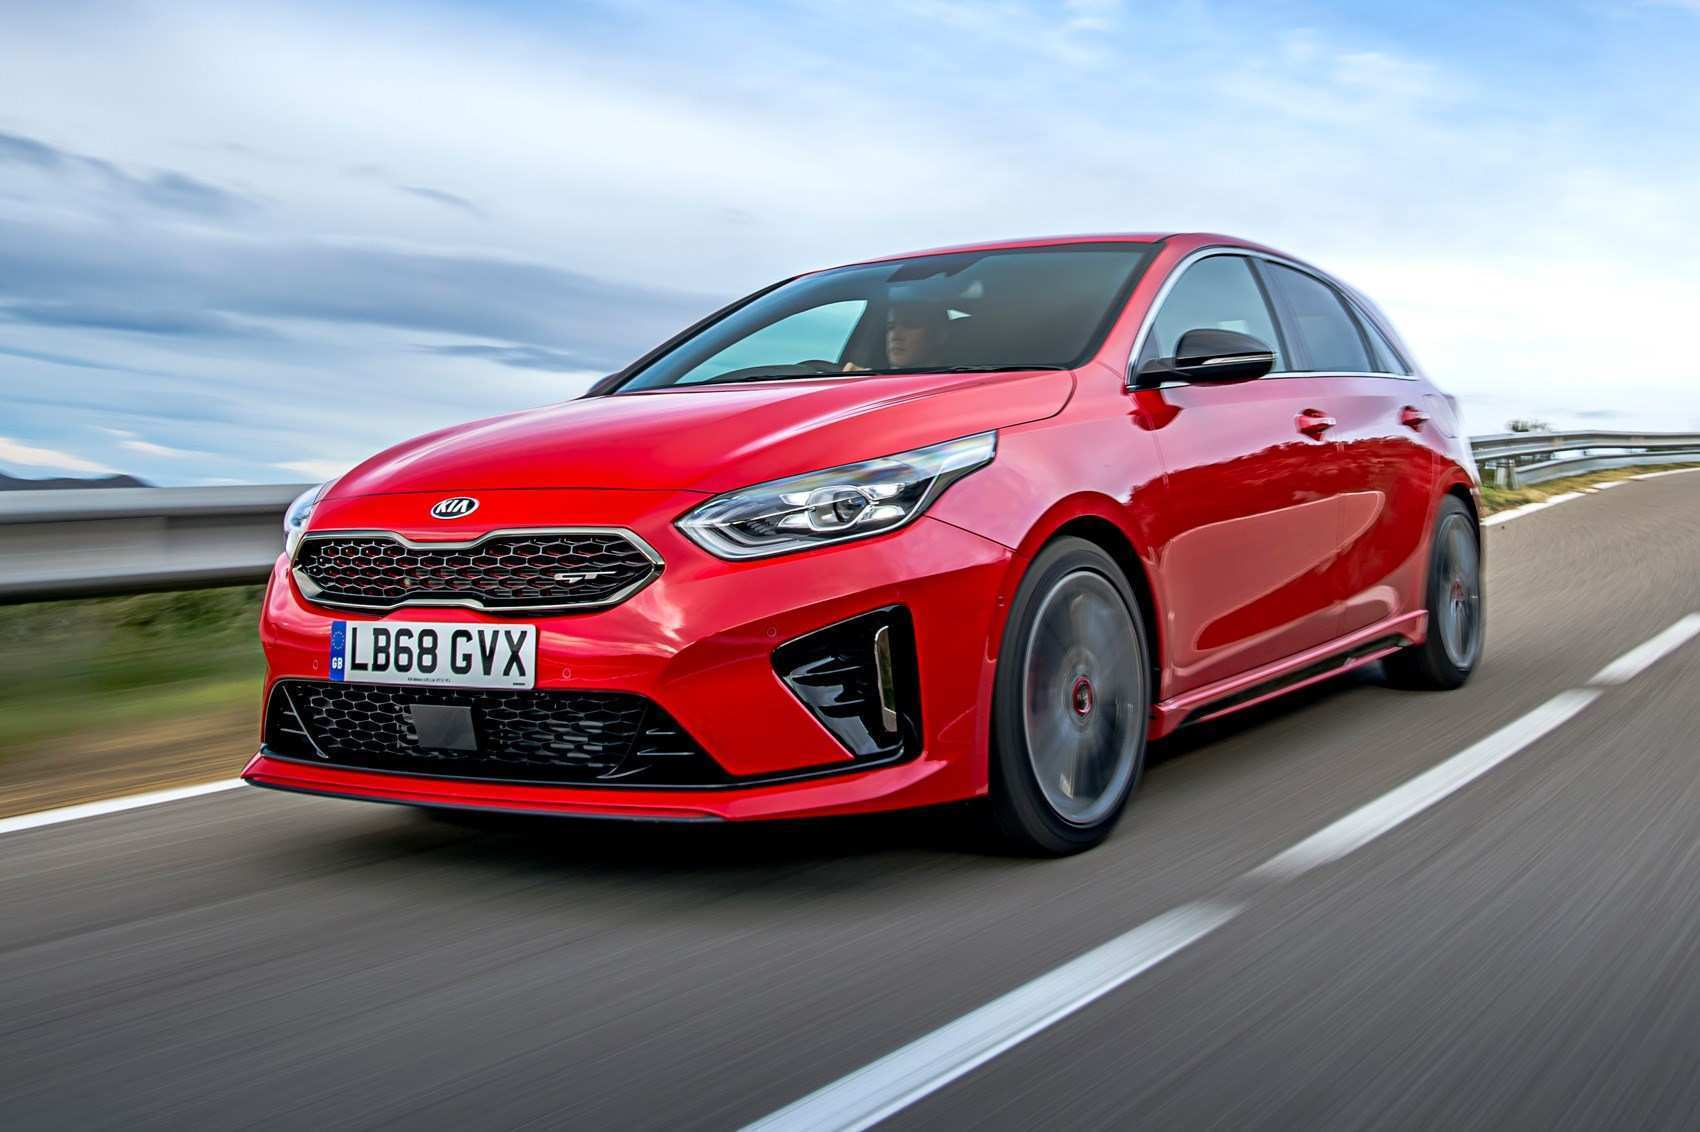 49 Gallery of Kia Ceed Gt 2019 Pictures for Kia Ceed Gt 2019